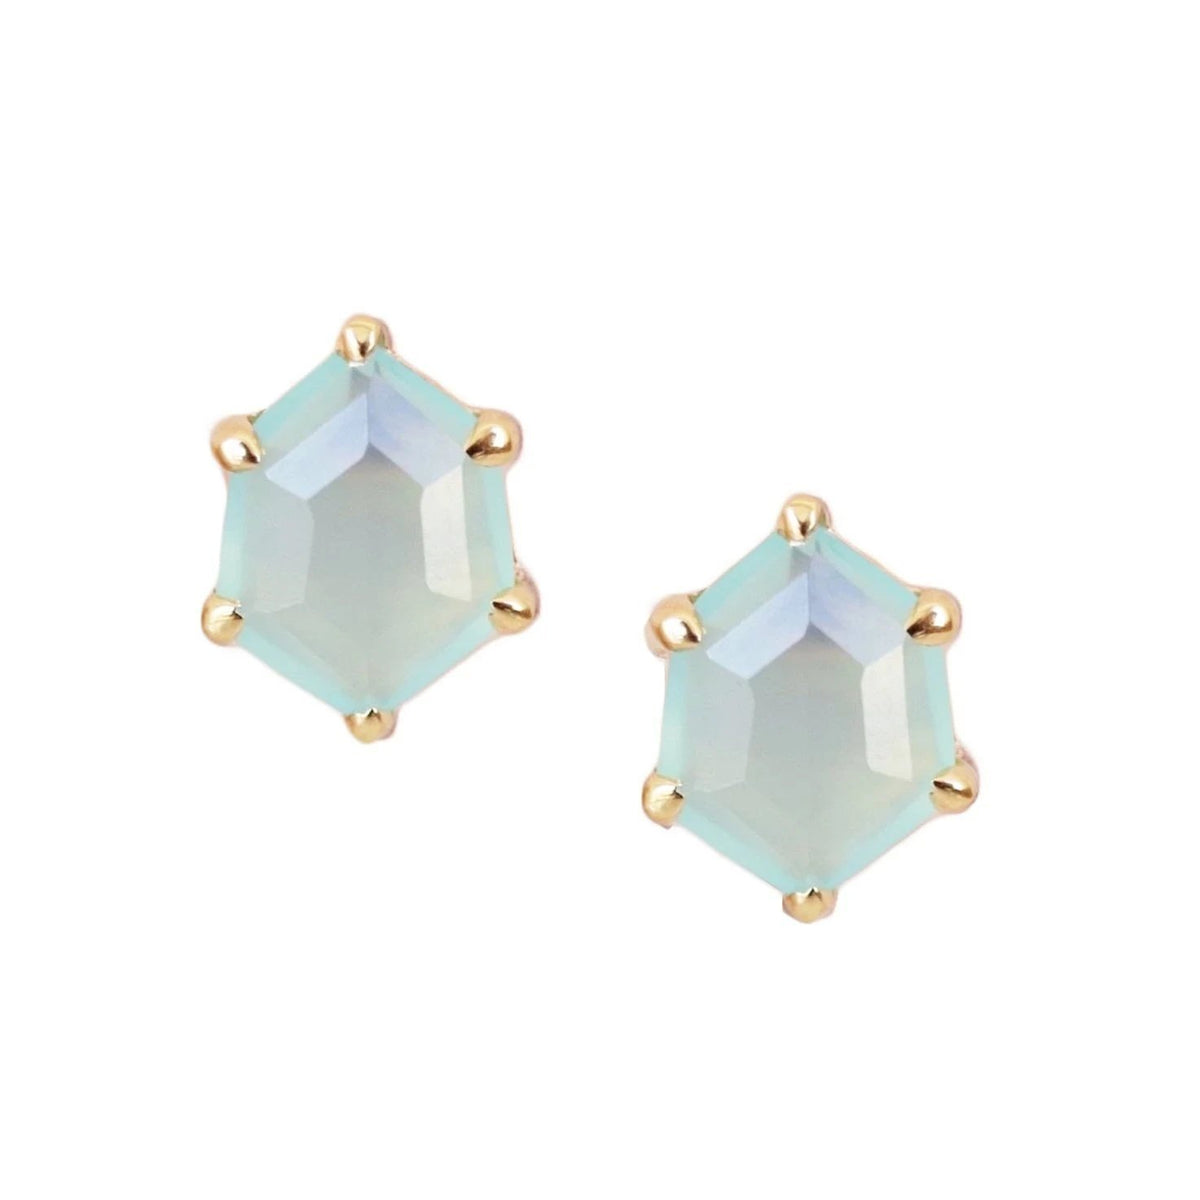 MINI HONOUR SHIELD STUD EARRINGS - AQUA CHALCEDONY & GOLD - SO PRETTY CARA COTTER